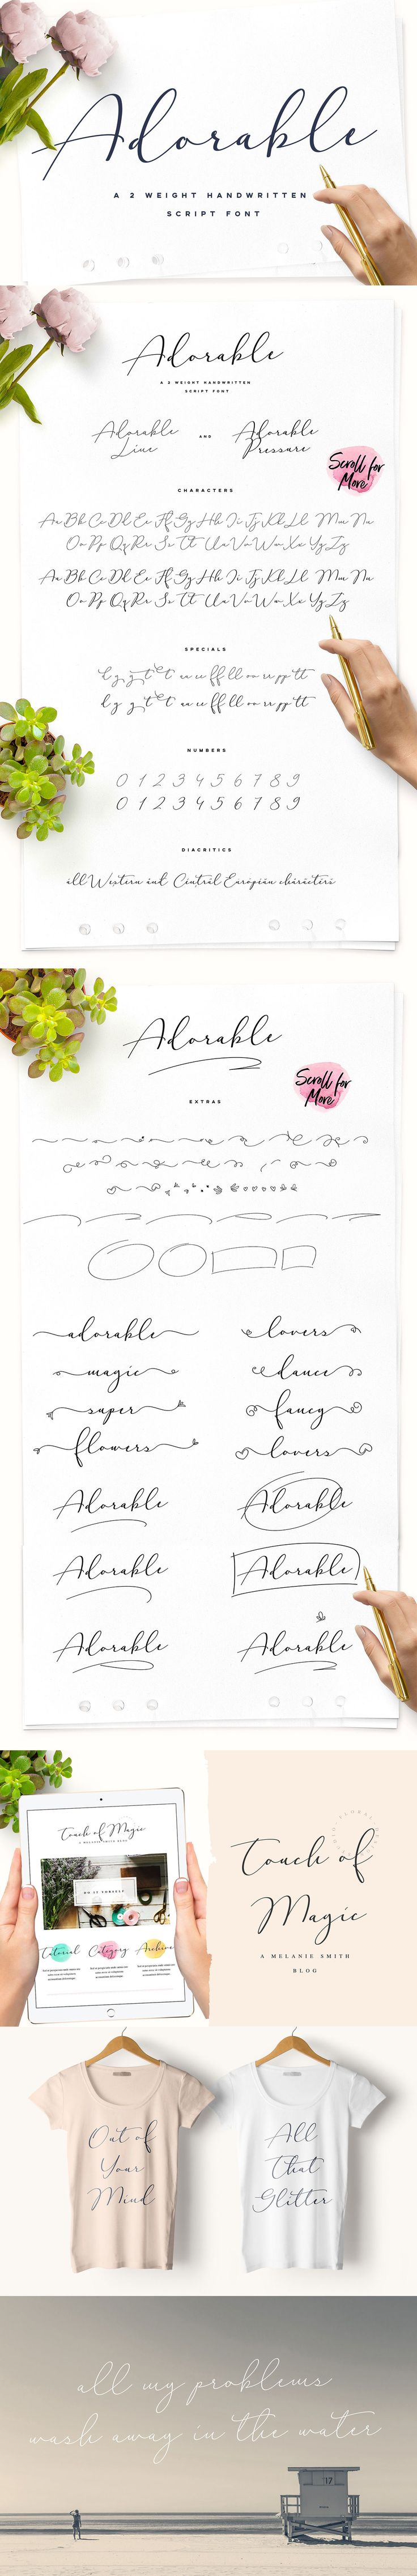 Adorable #Handwritten Script Font! It's characteristic hand look style makes it perfect to use for logos, #signatures, labels, #packaging #design, #blog headlines or simply use it in your next design project. ( #typography #retro #logodesign #whisky #print #inspiration #typeface #font )